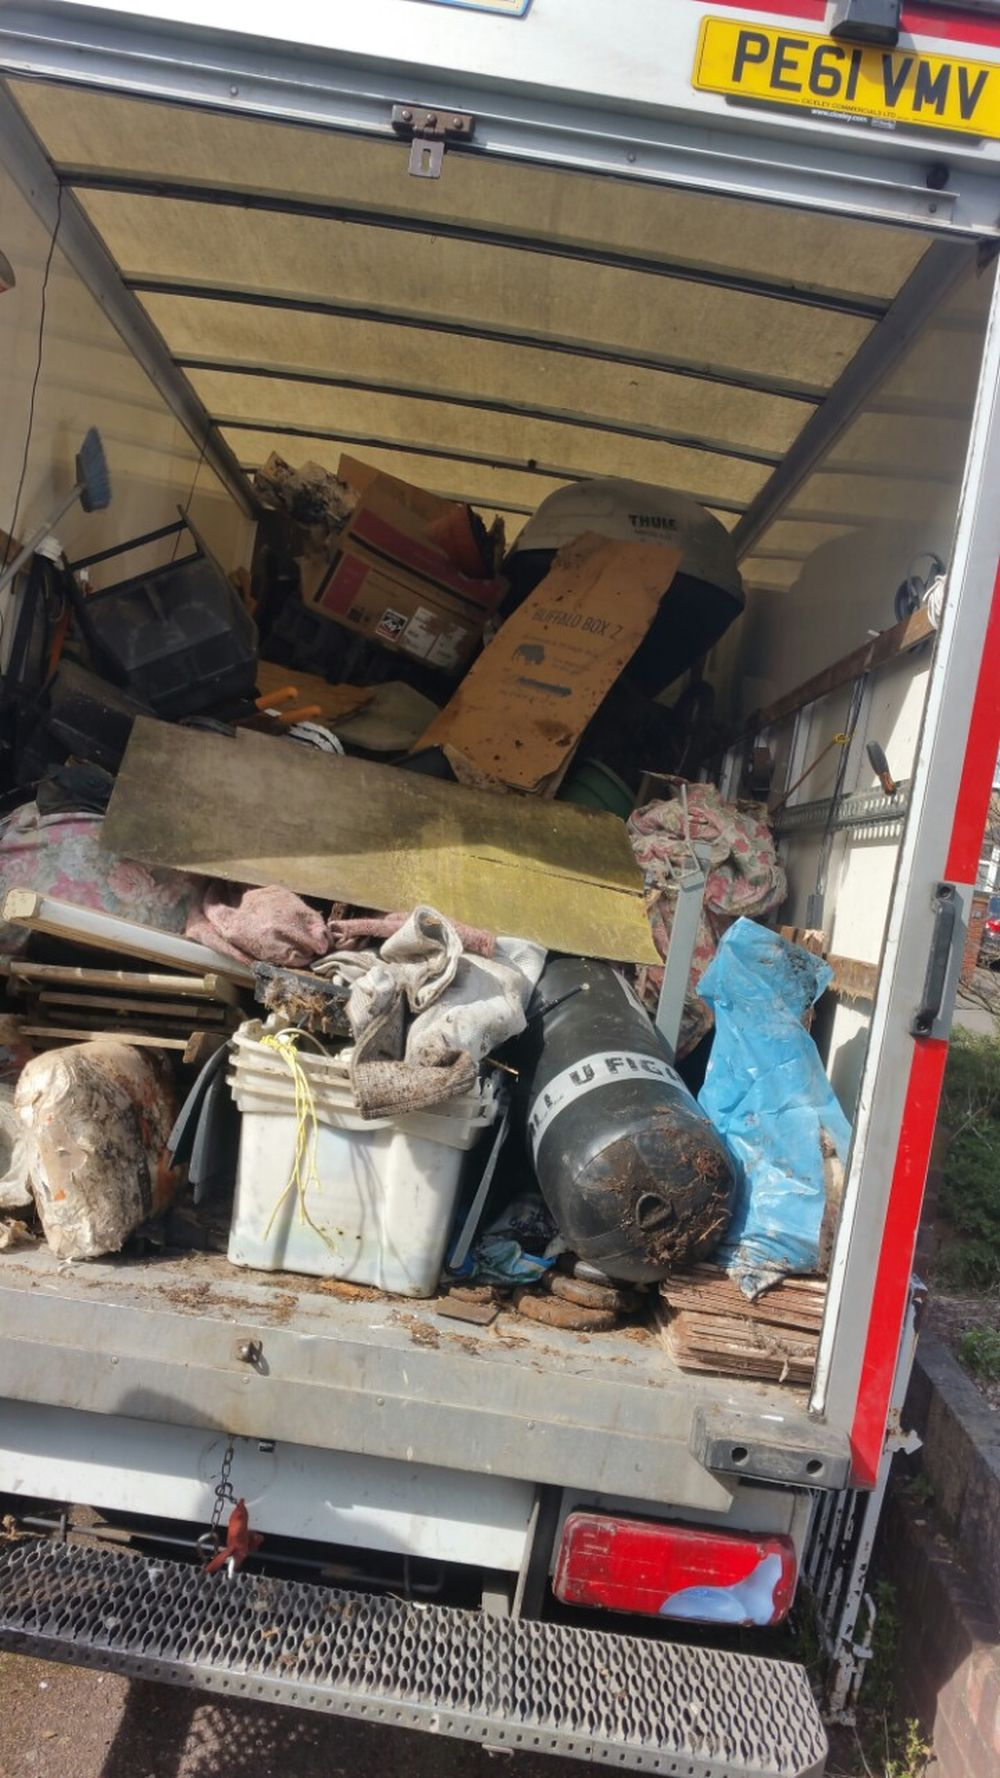 Junk Disposal Service in Hammersmith